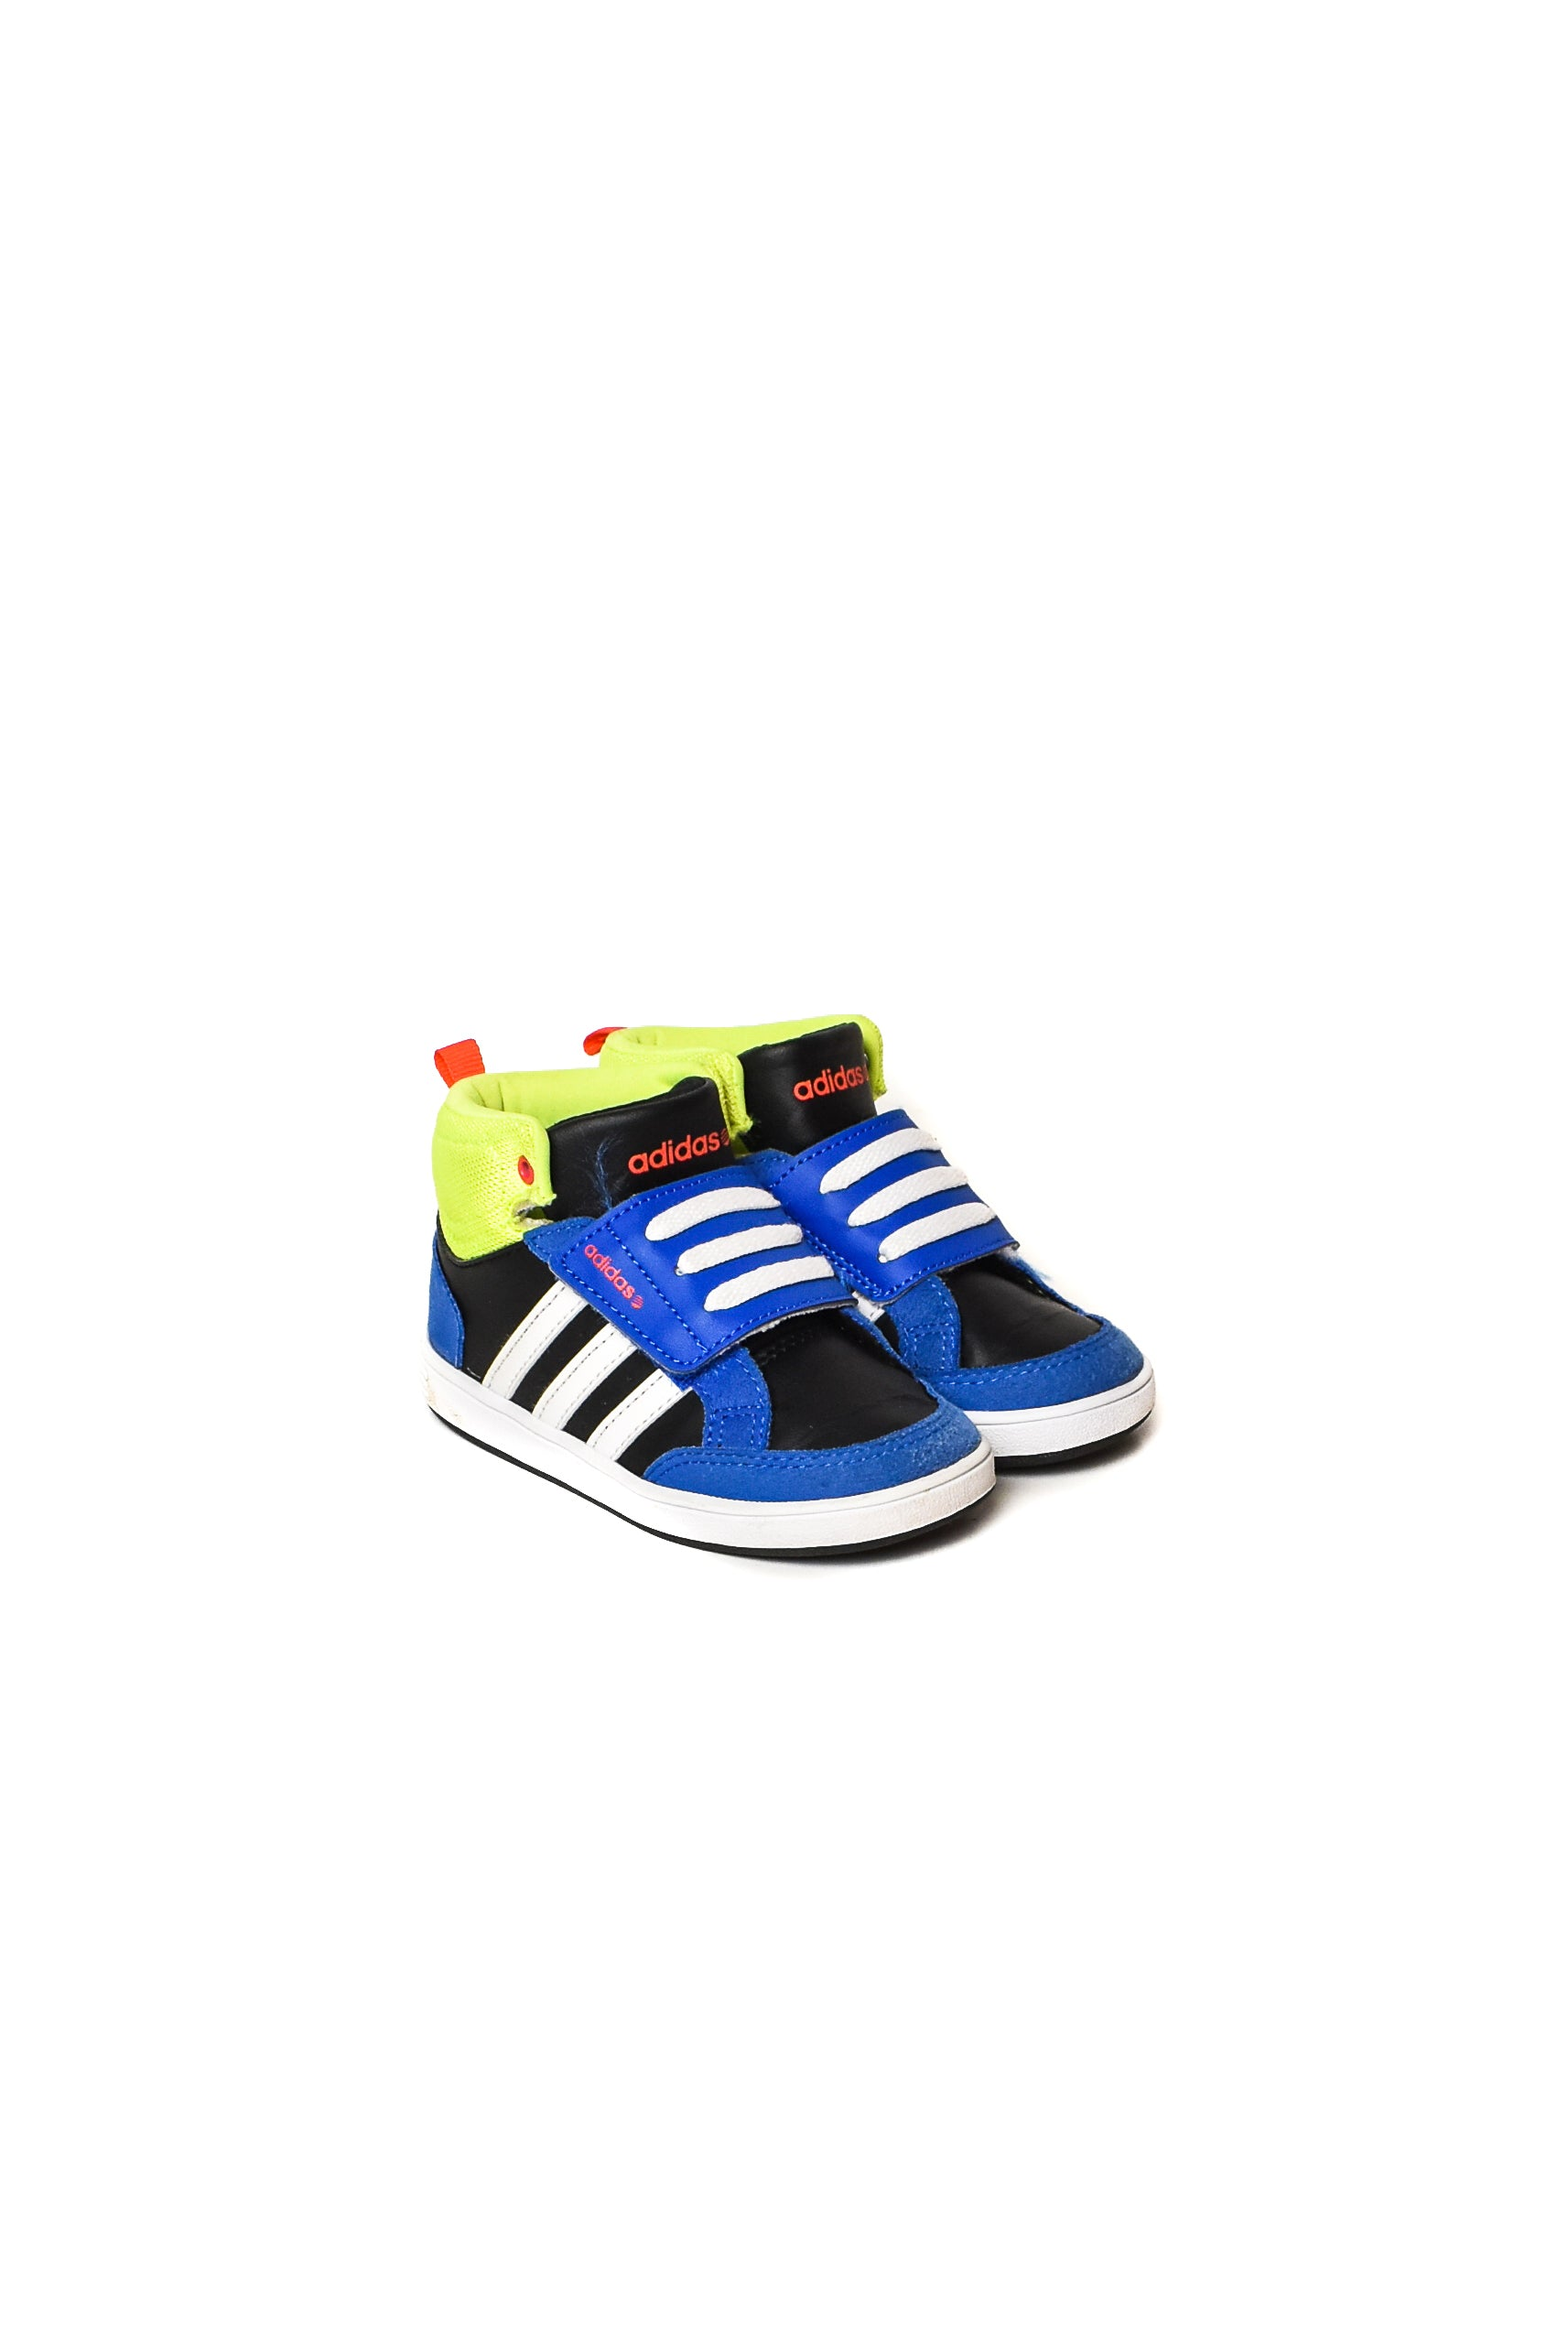 10008520 Adidas Kids~ Shoes 3T (EU 24) at Retykle